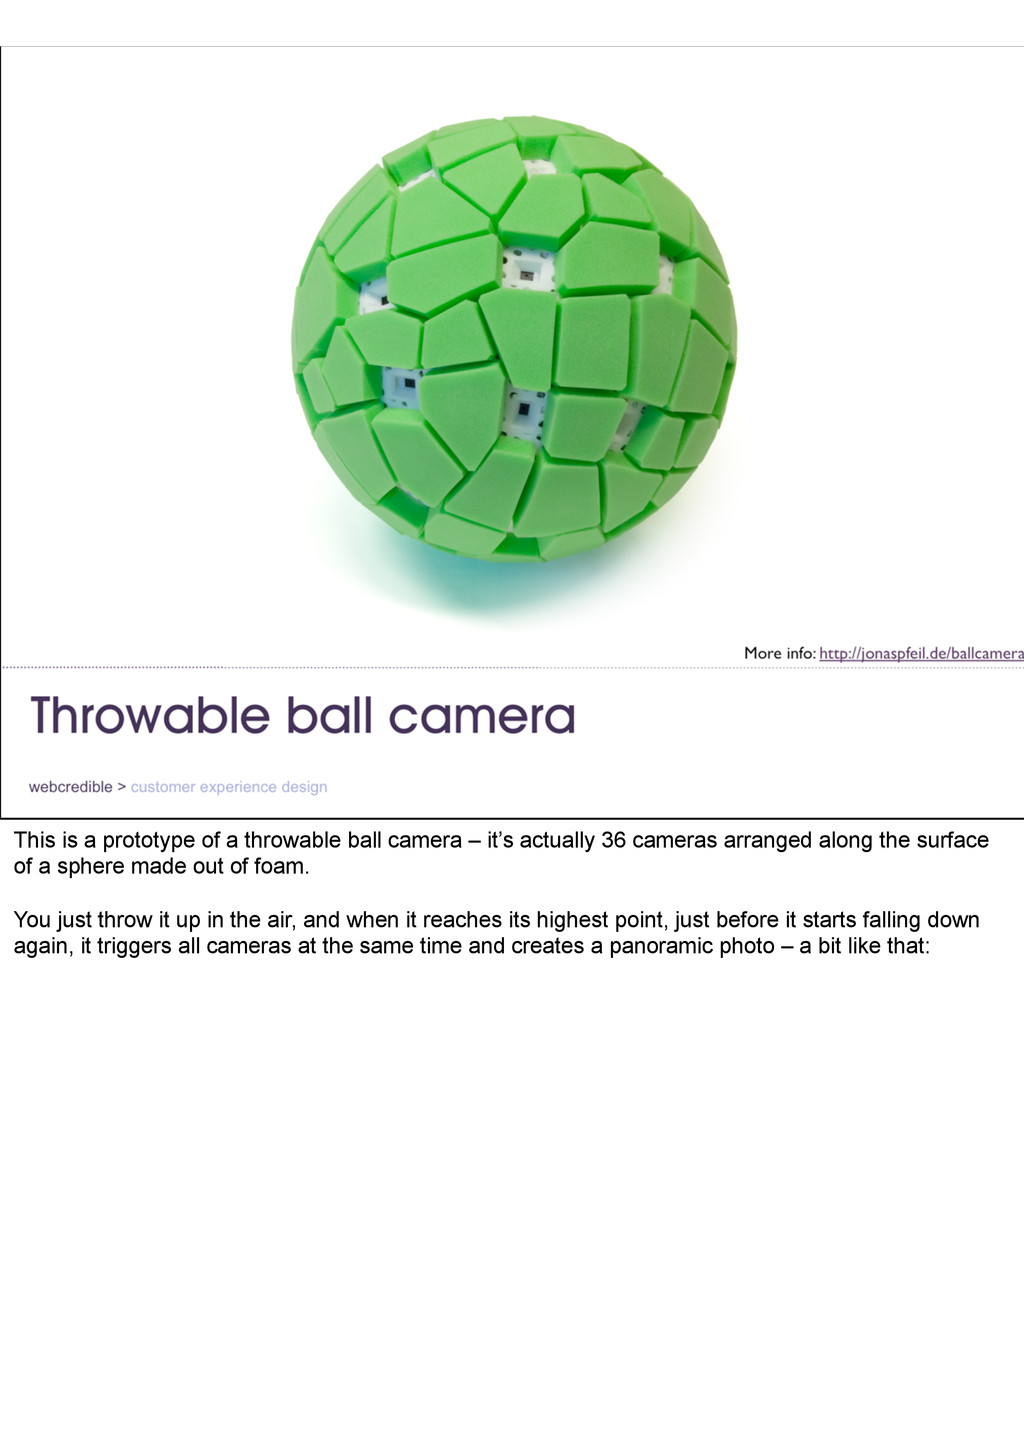 This is a prototype of a throwable ball camera ...